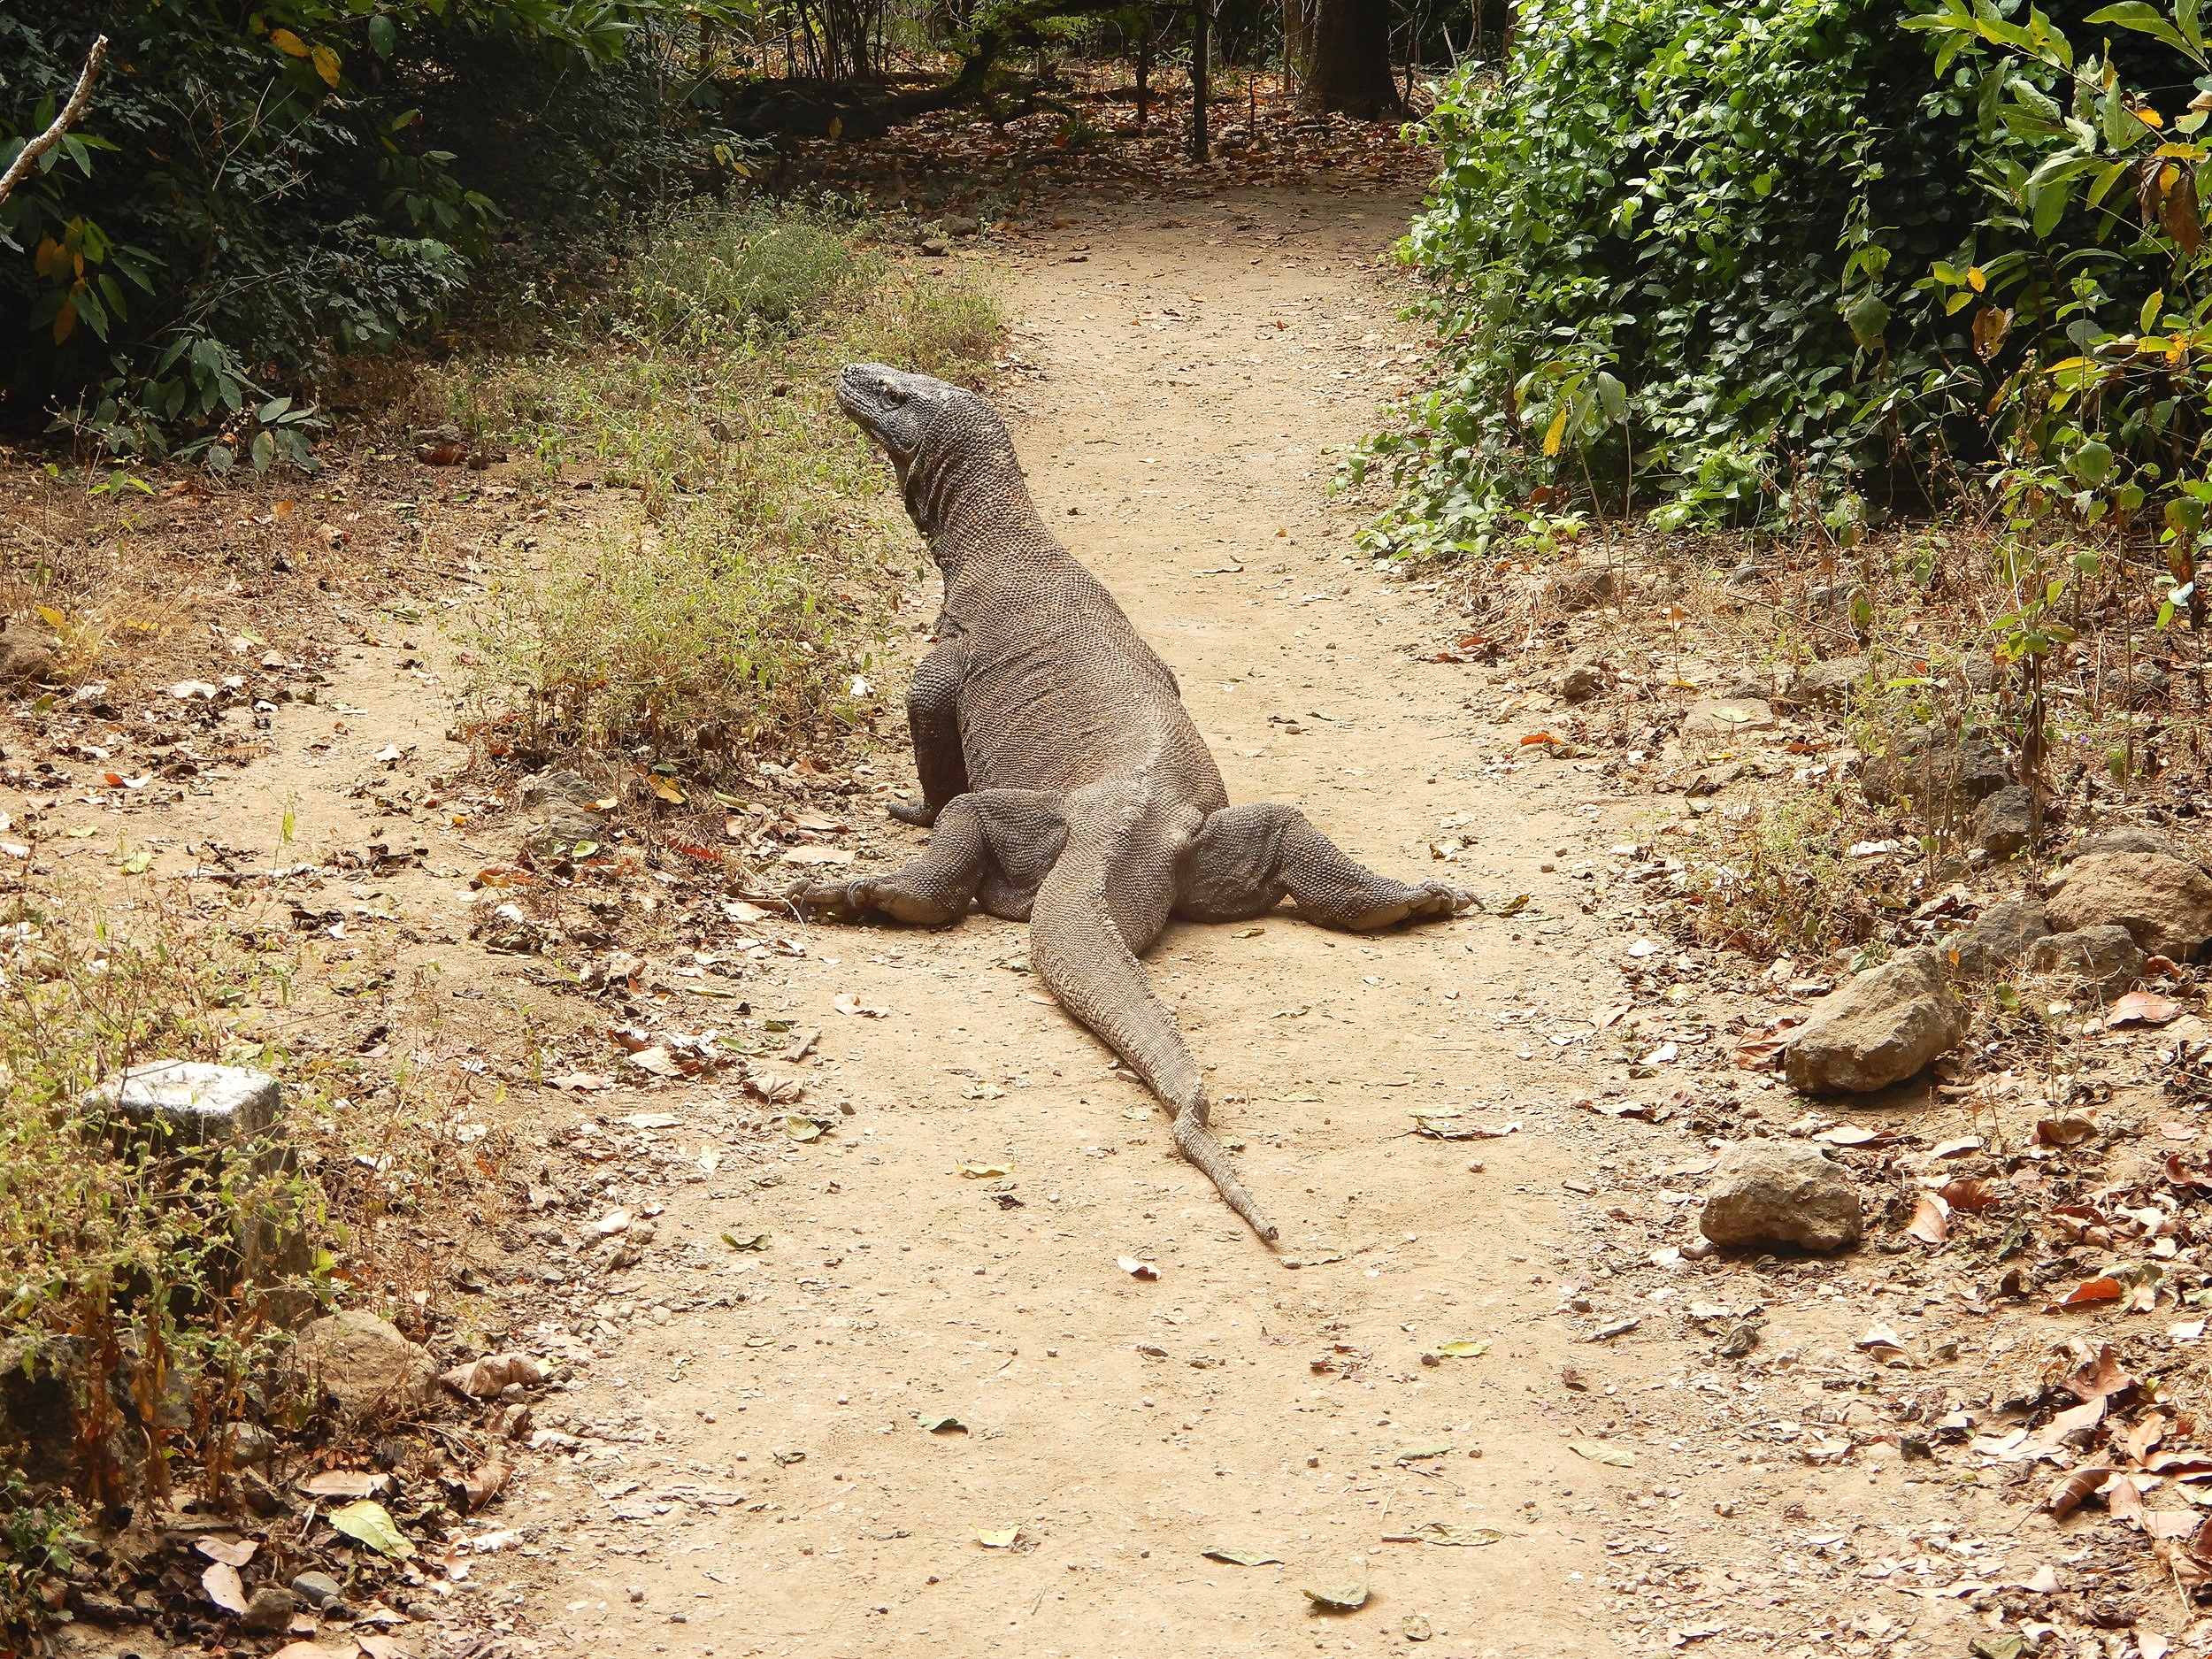 Komodo Dragon doing the splits, not something you see every day huh?